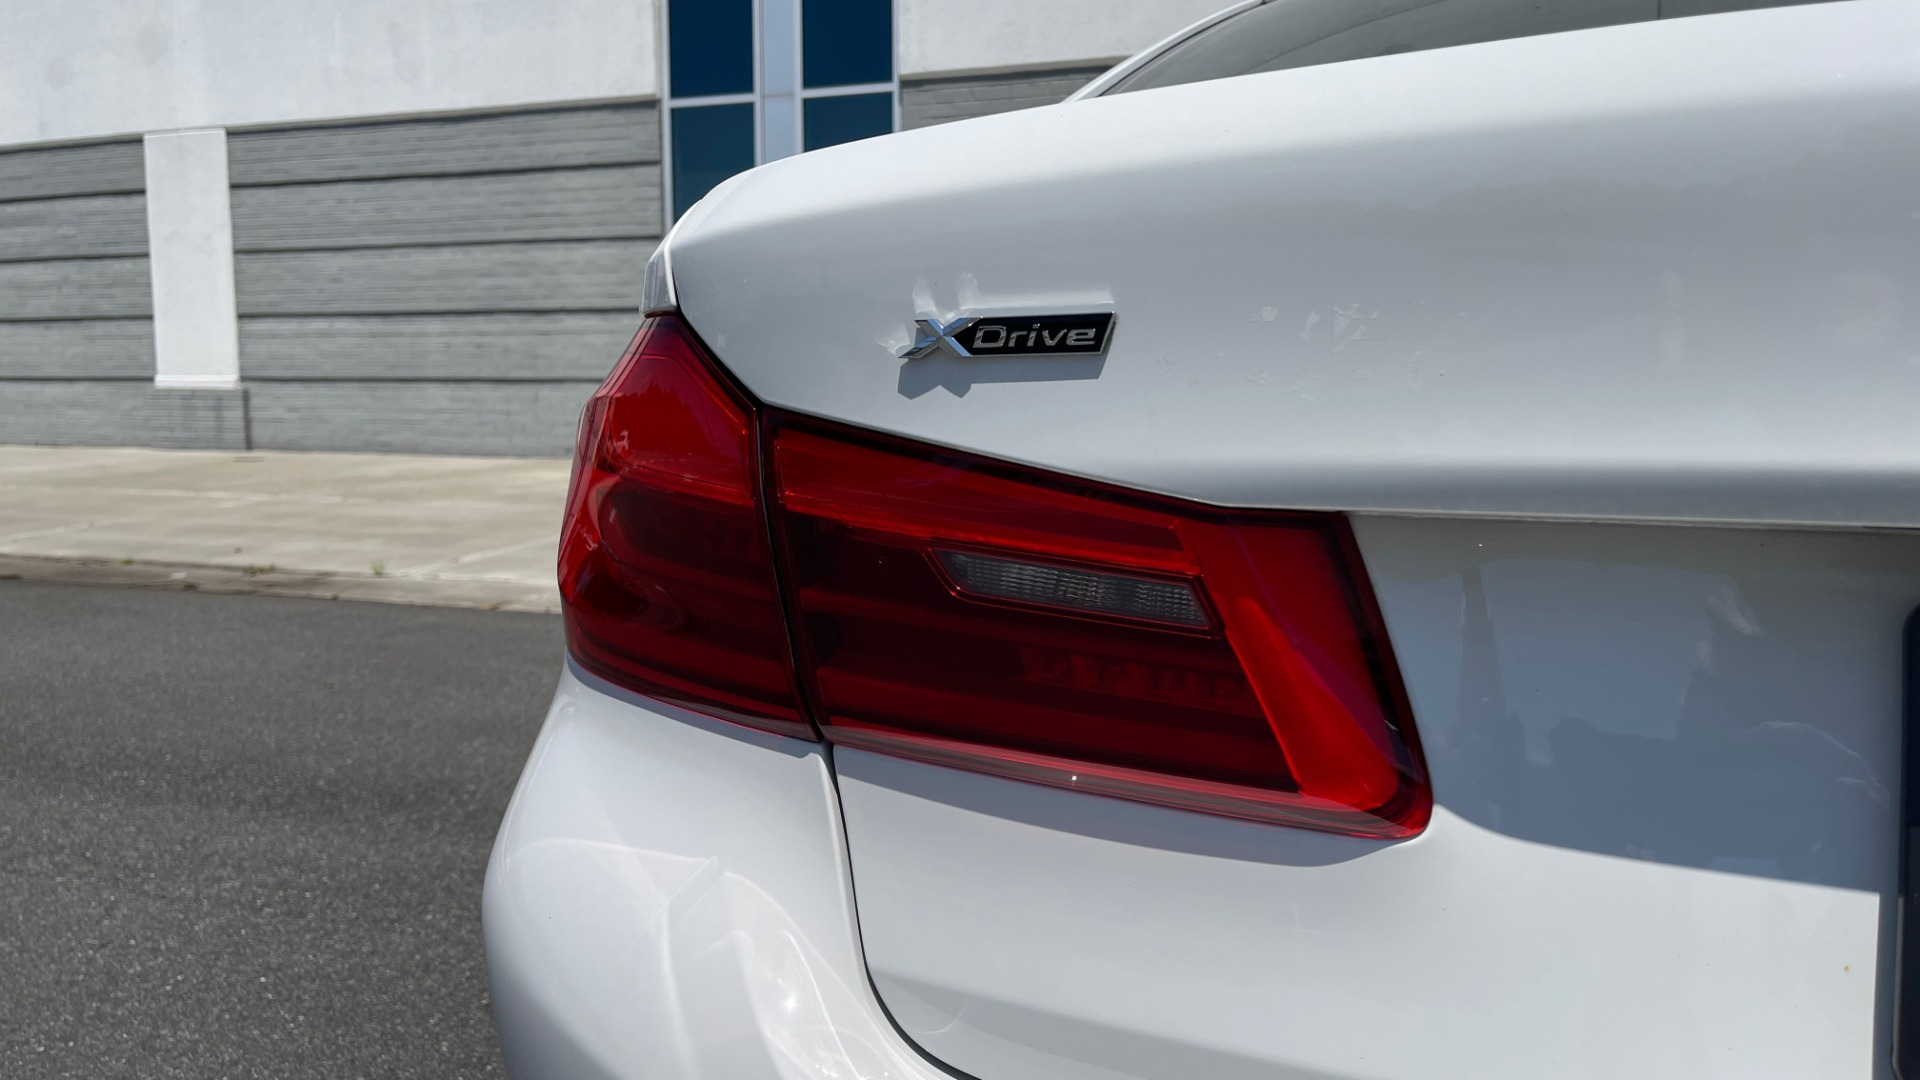 Used 2018 BMW 5 SERIES 540IXDRIVE PREMIUM / PARK ASSIST / KEYLESS ENTRY / SUNROOF / REARVIEW for sale $42,995 at Formula Imports in Charlotte NC 28227 22